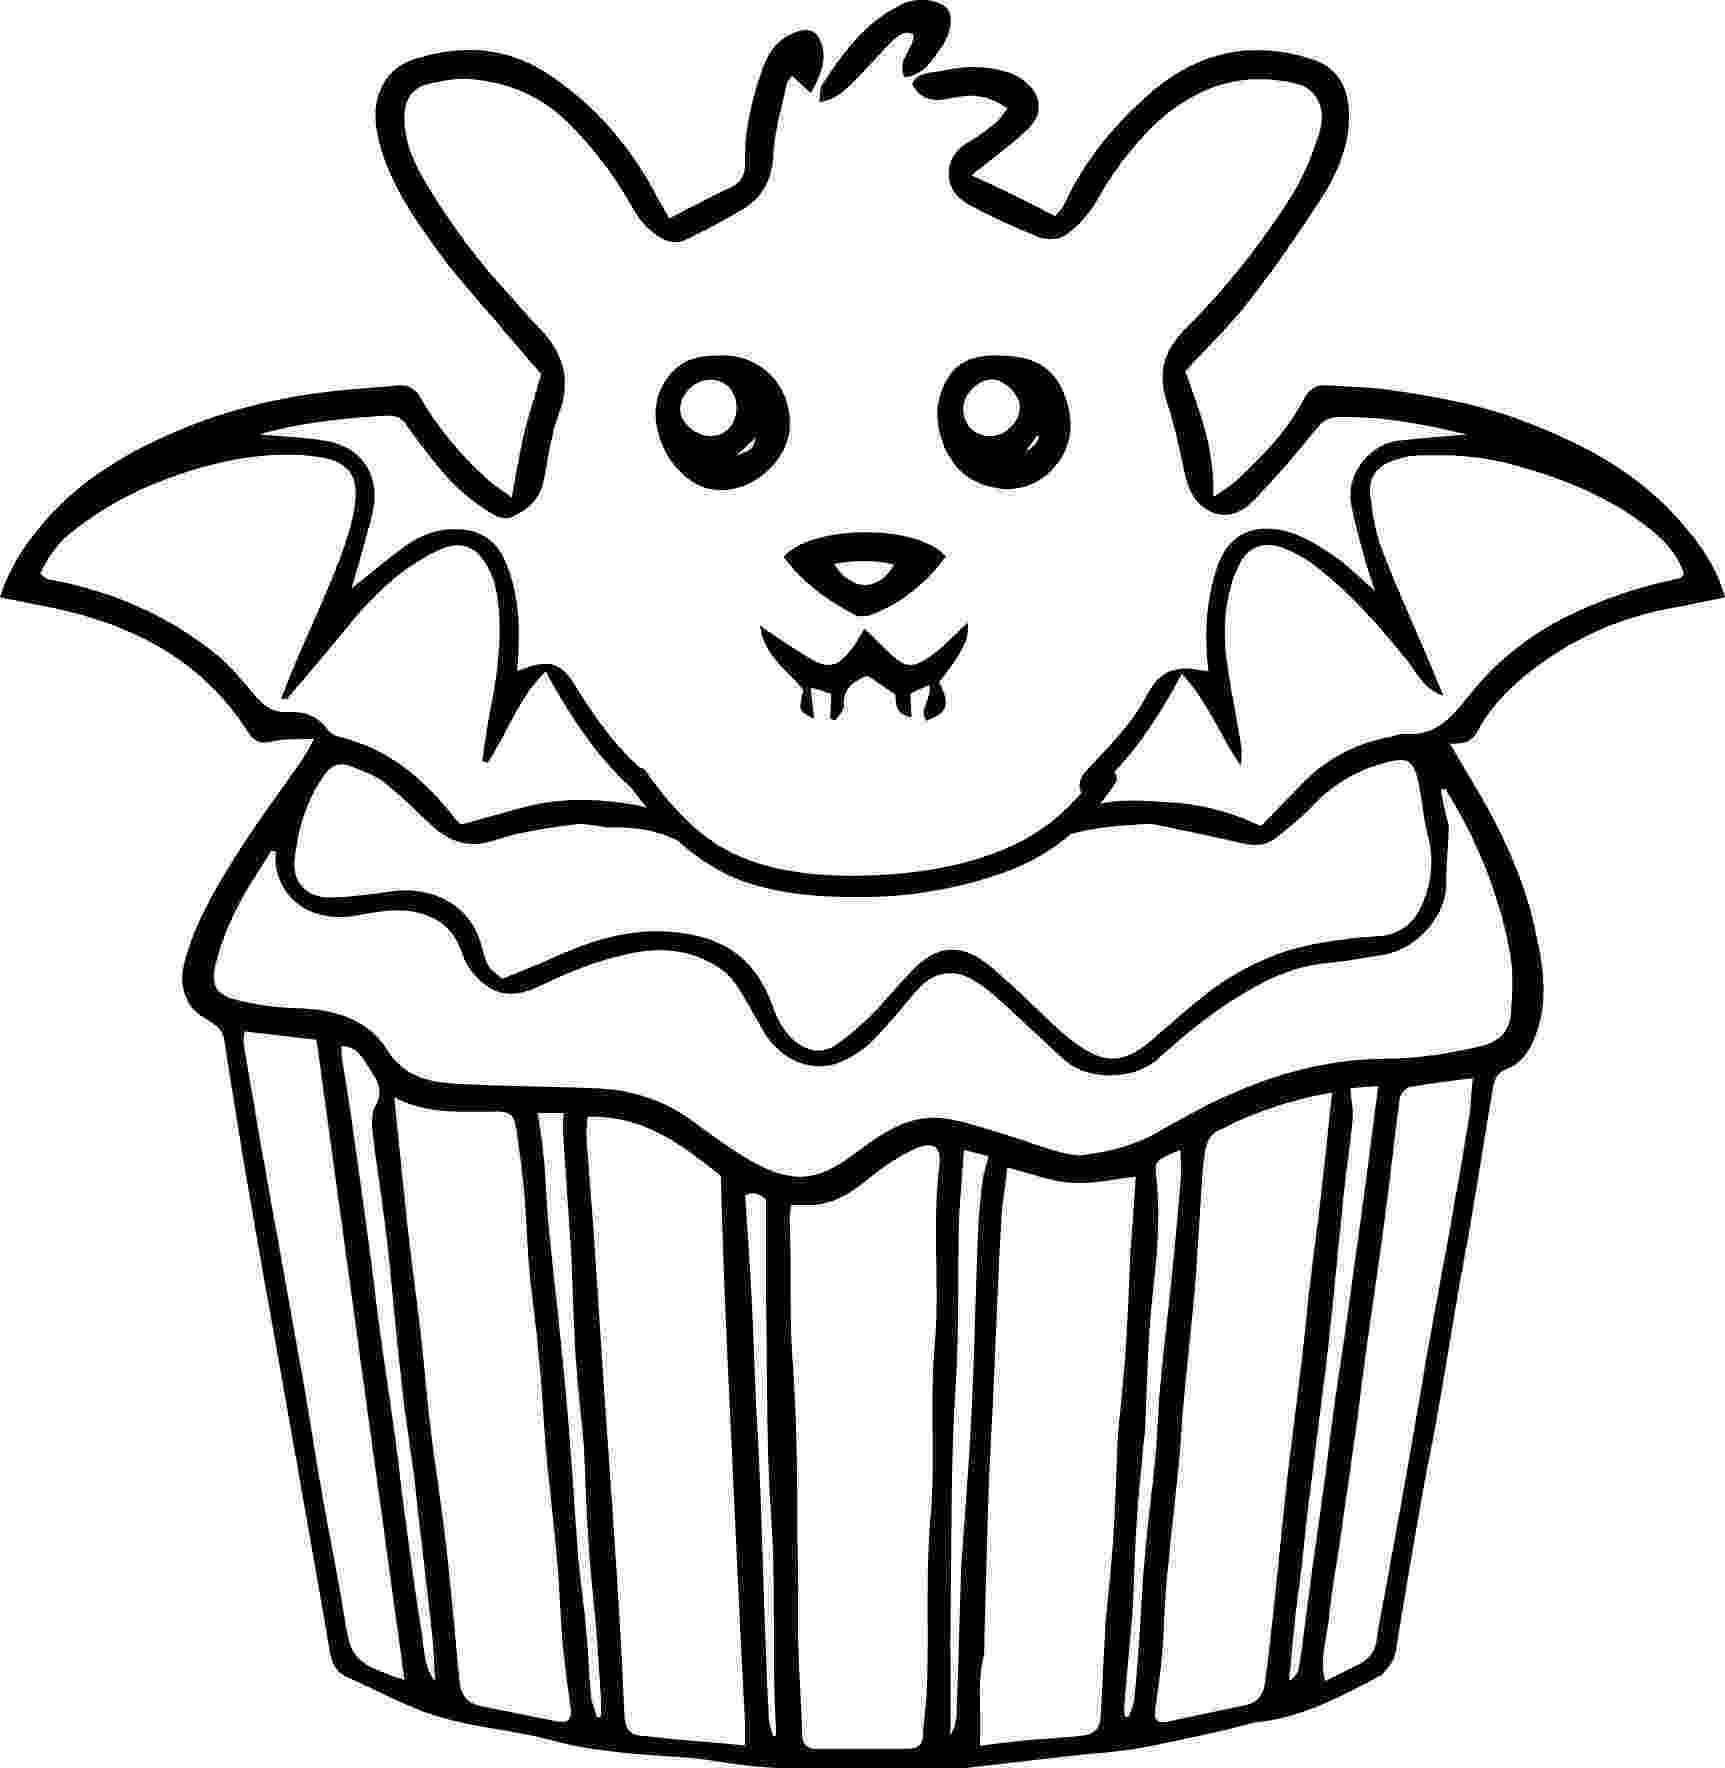 muffin coloring pages 19 best desenhos para colorir images on pinterest print coloring muffin pages